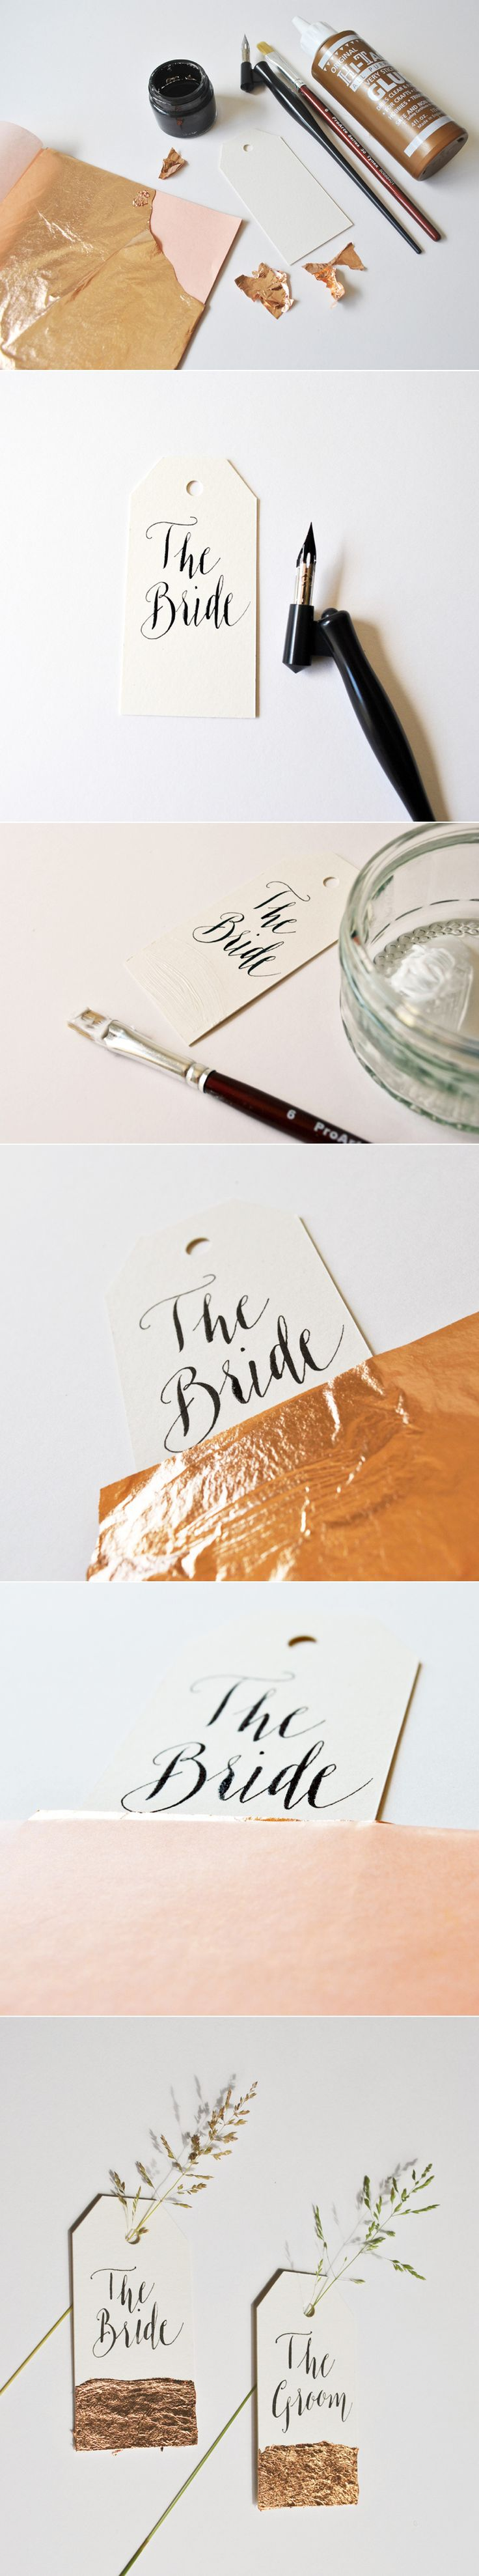 Copper Leaf Place Name Calligraphy Luggage Tag Tutorial DIY Lettering